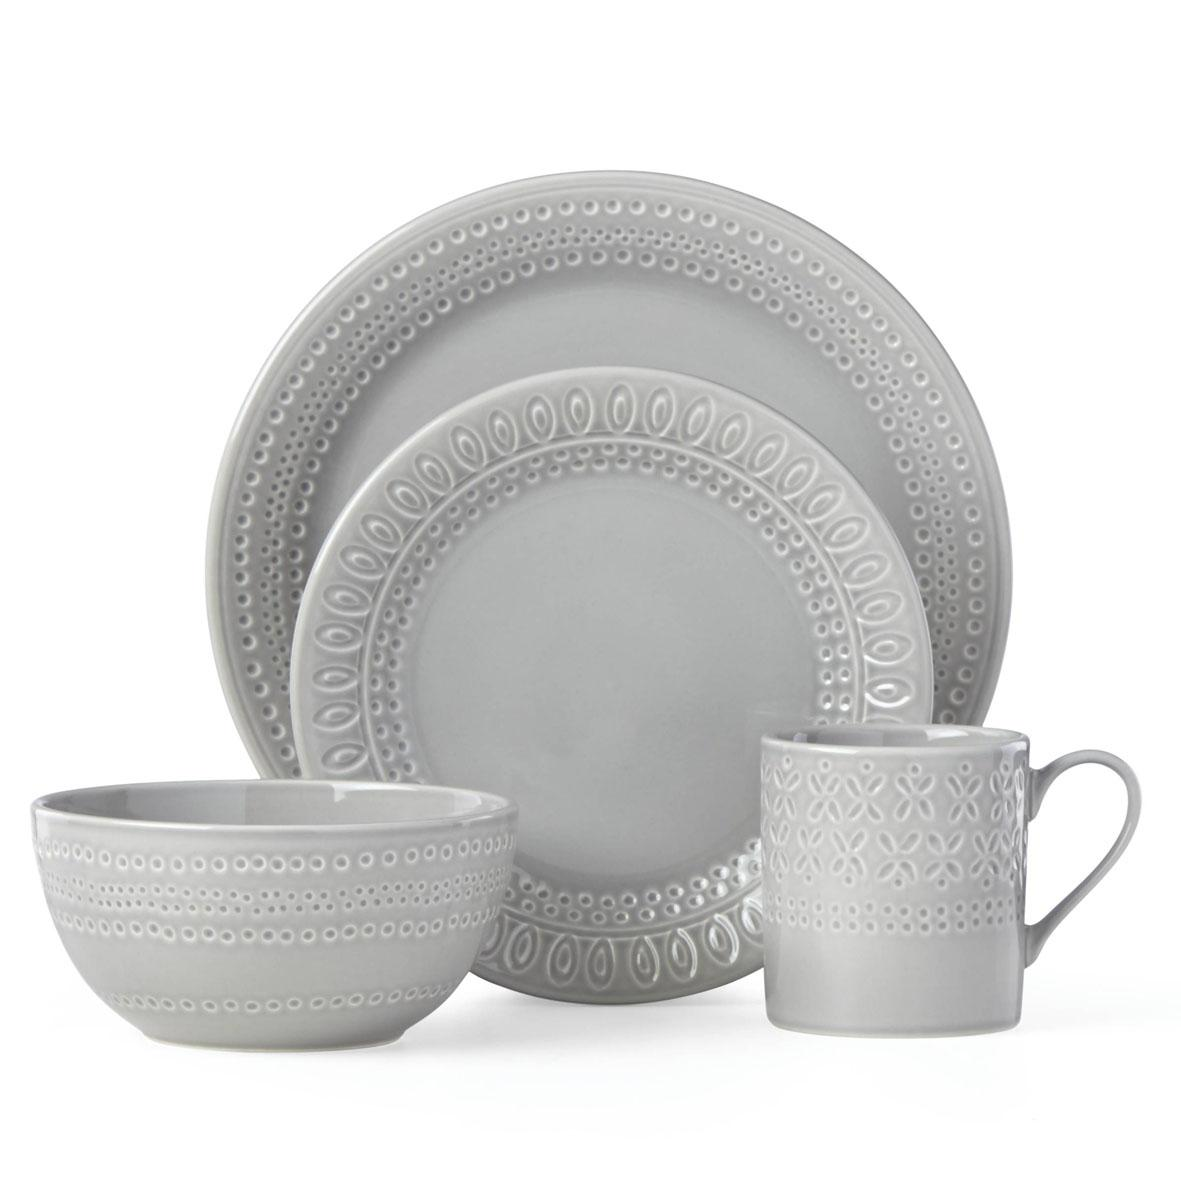 kate spade new york Lenox Stoneware Willow Drive Grey 4pc Place Setting